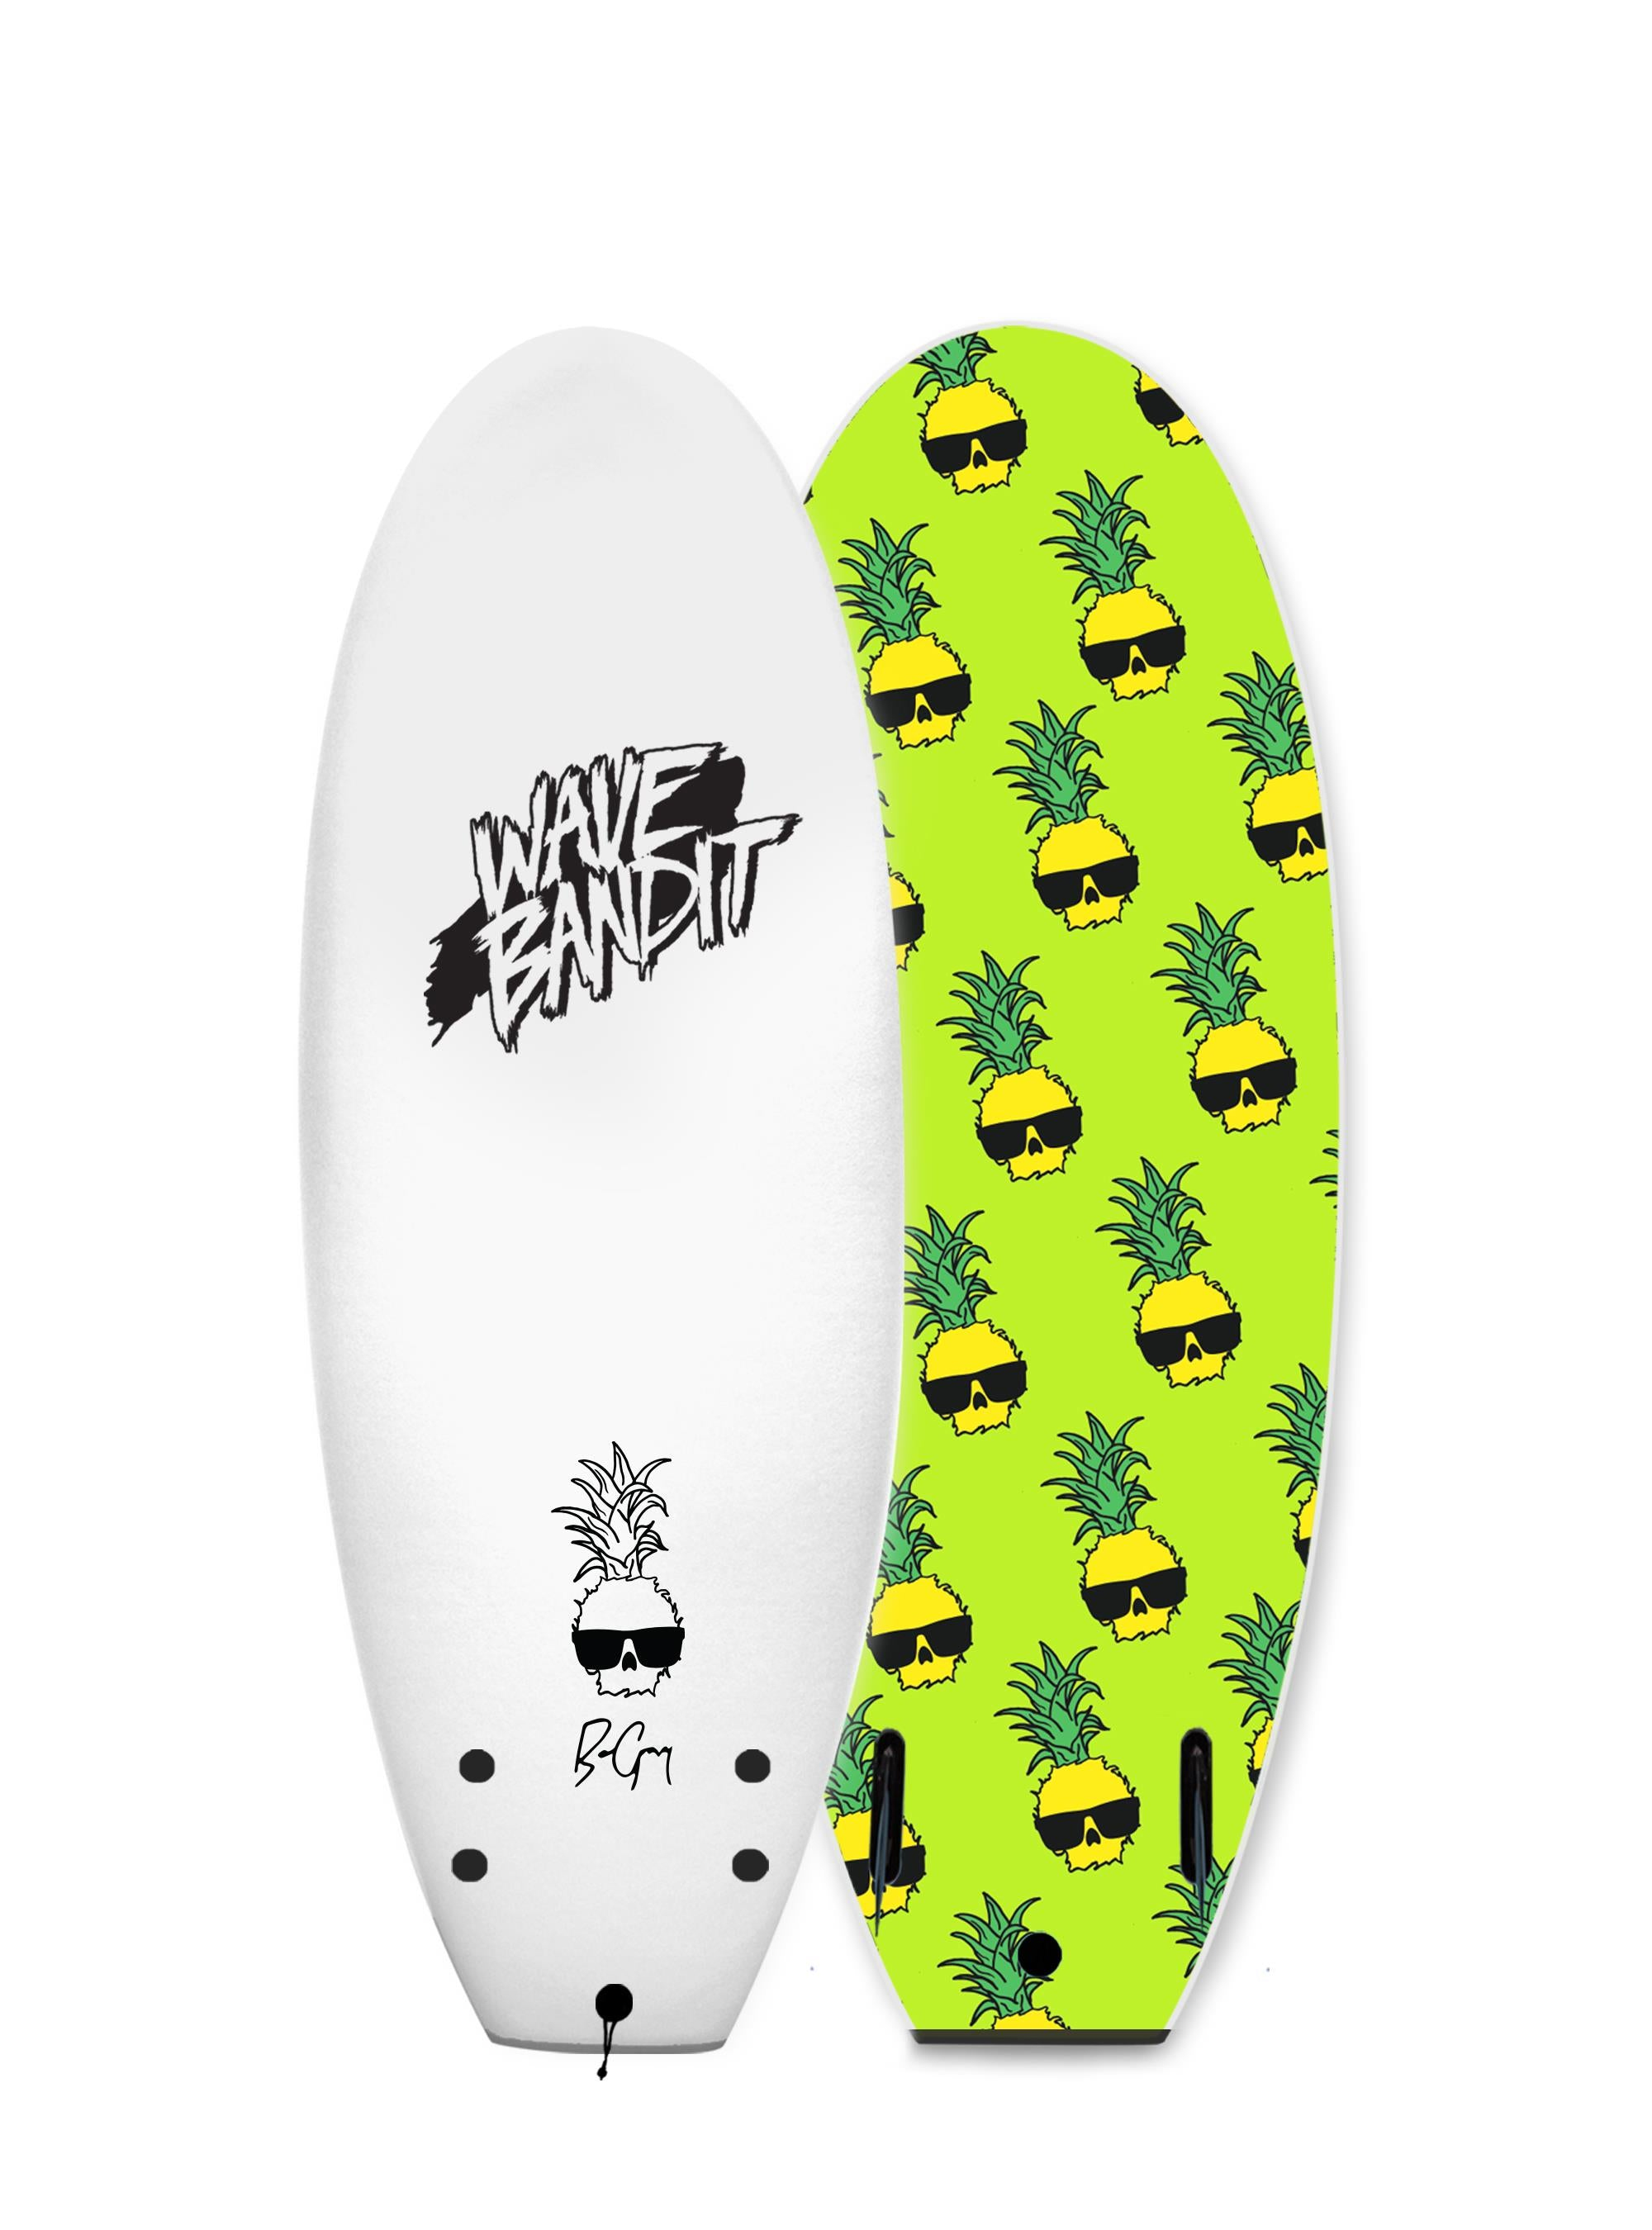 Catch Surf Wave Bandit 4'10 Twin Fin Performer - Ben Gravy - Board Store Catch SurfSoftboard